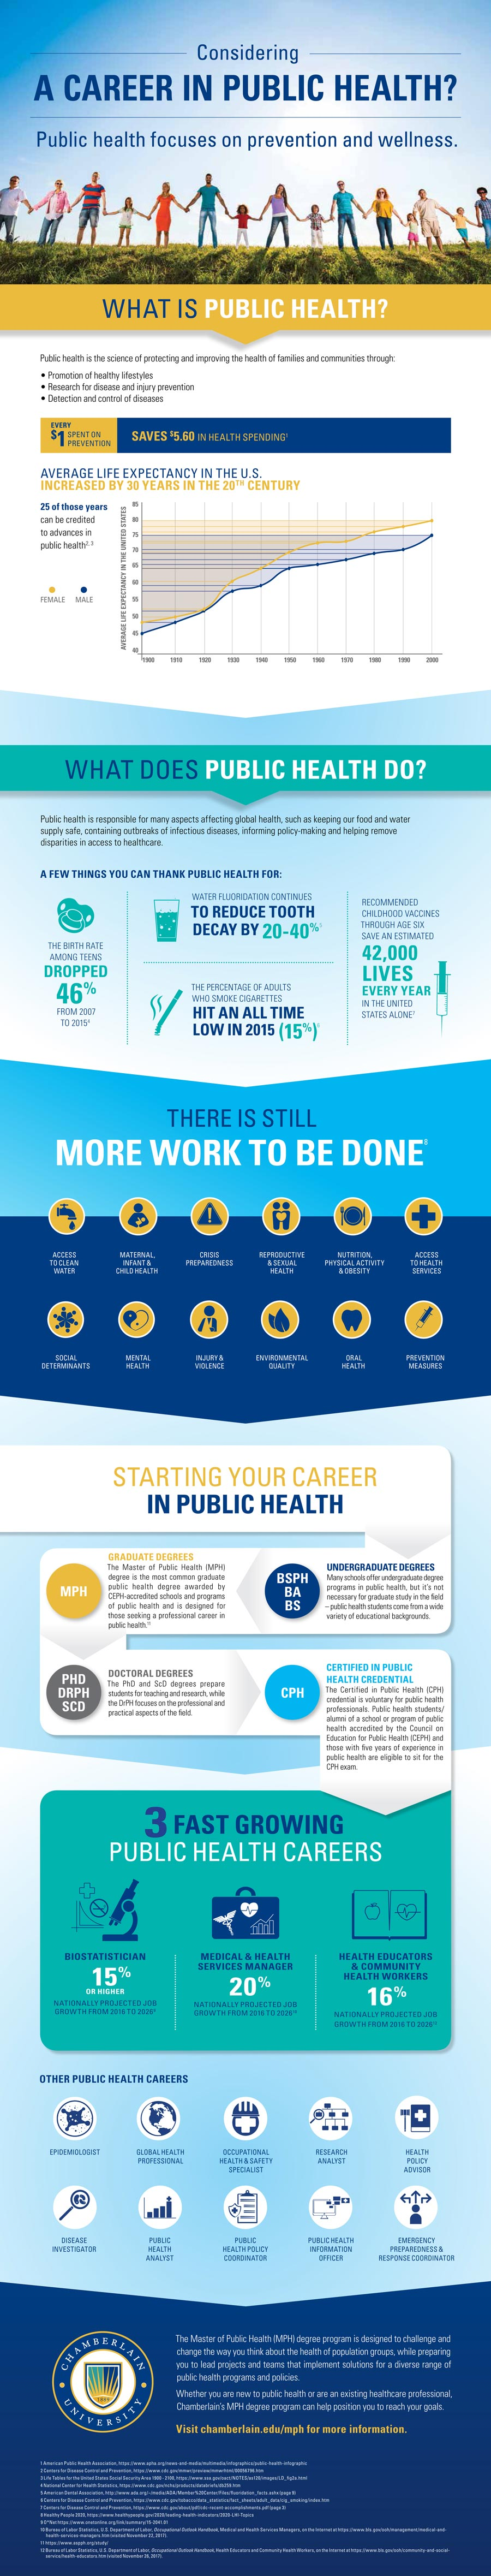 Master in Public Health Infographic